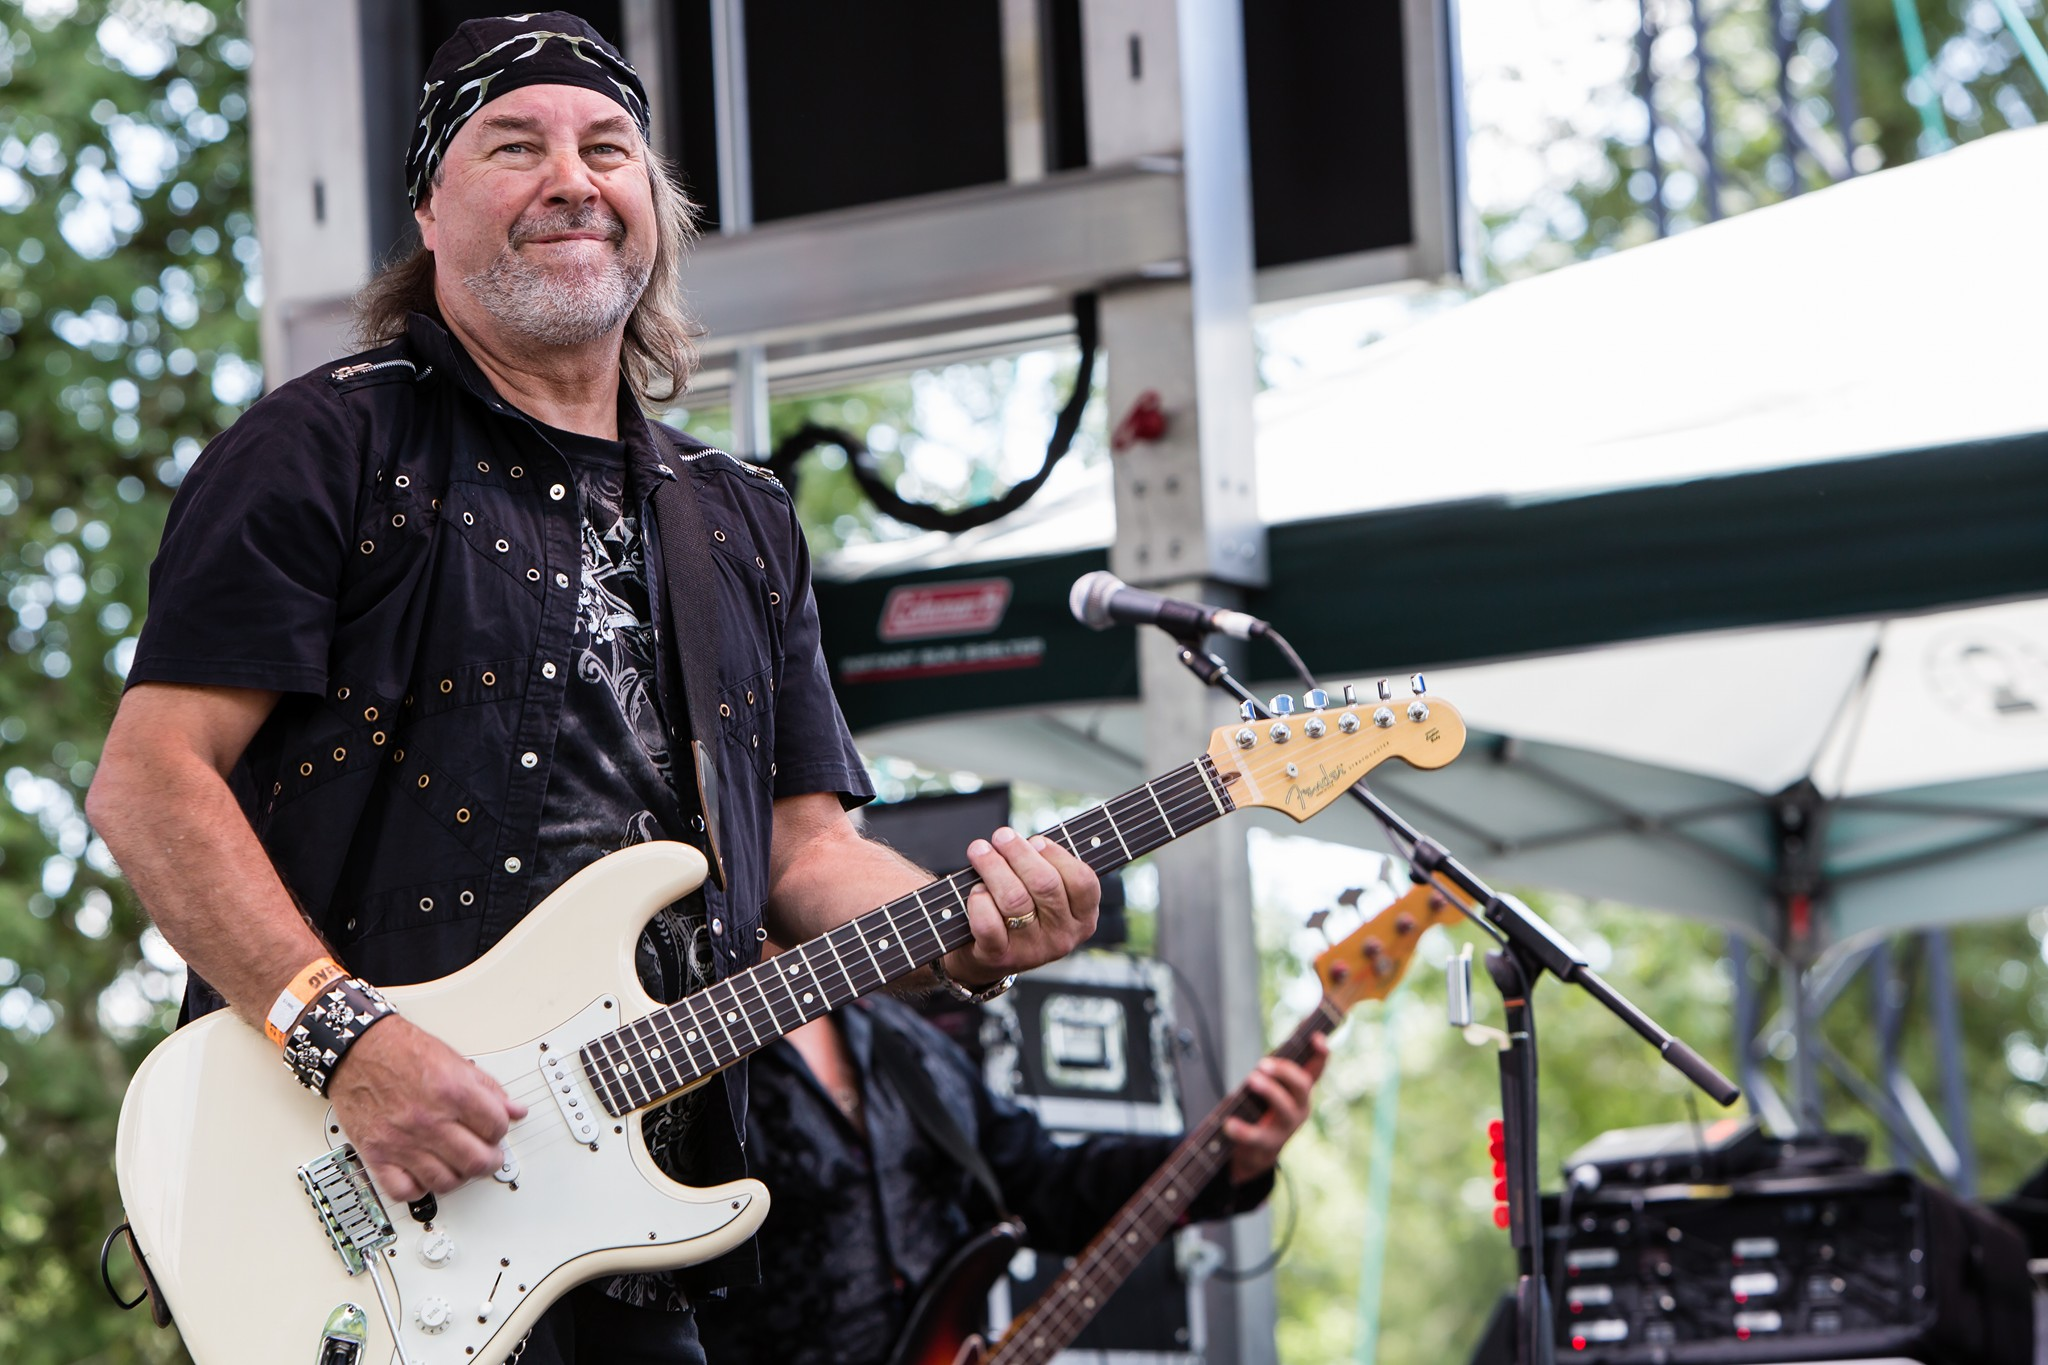 Ray as part of All Fired Up at Harefest 6. Photo by Mur-Man Productions